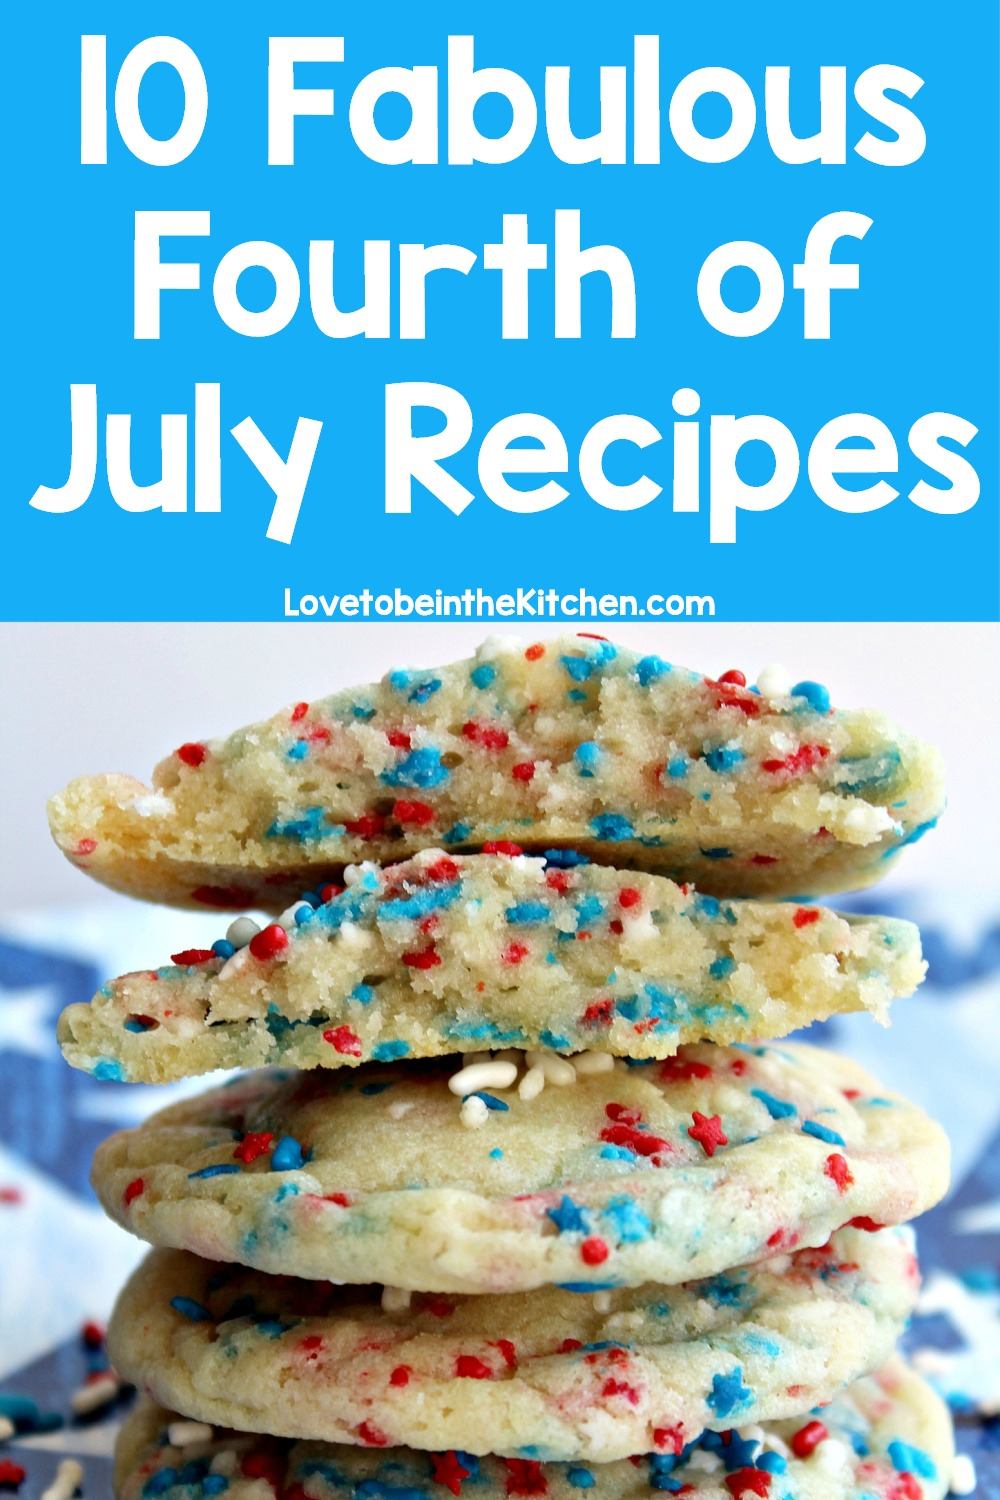 10 Fabulous Fourth of July Recipes